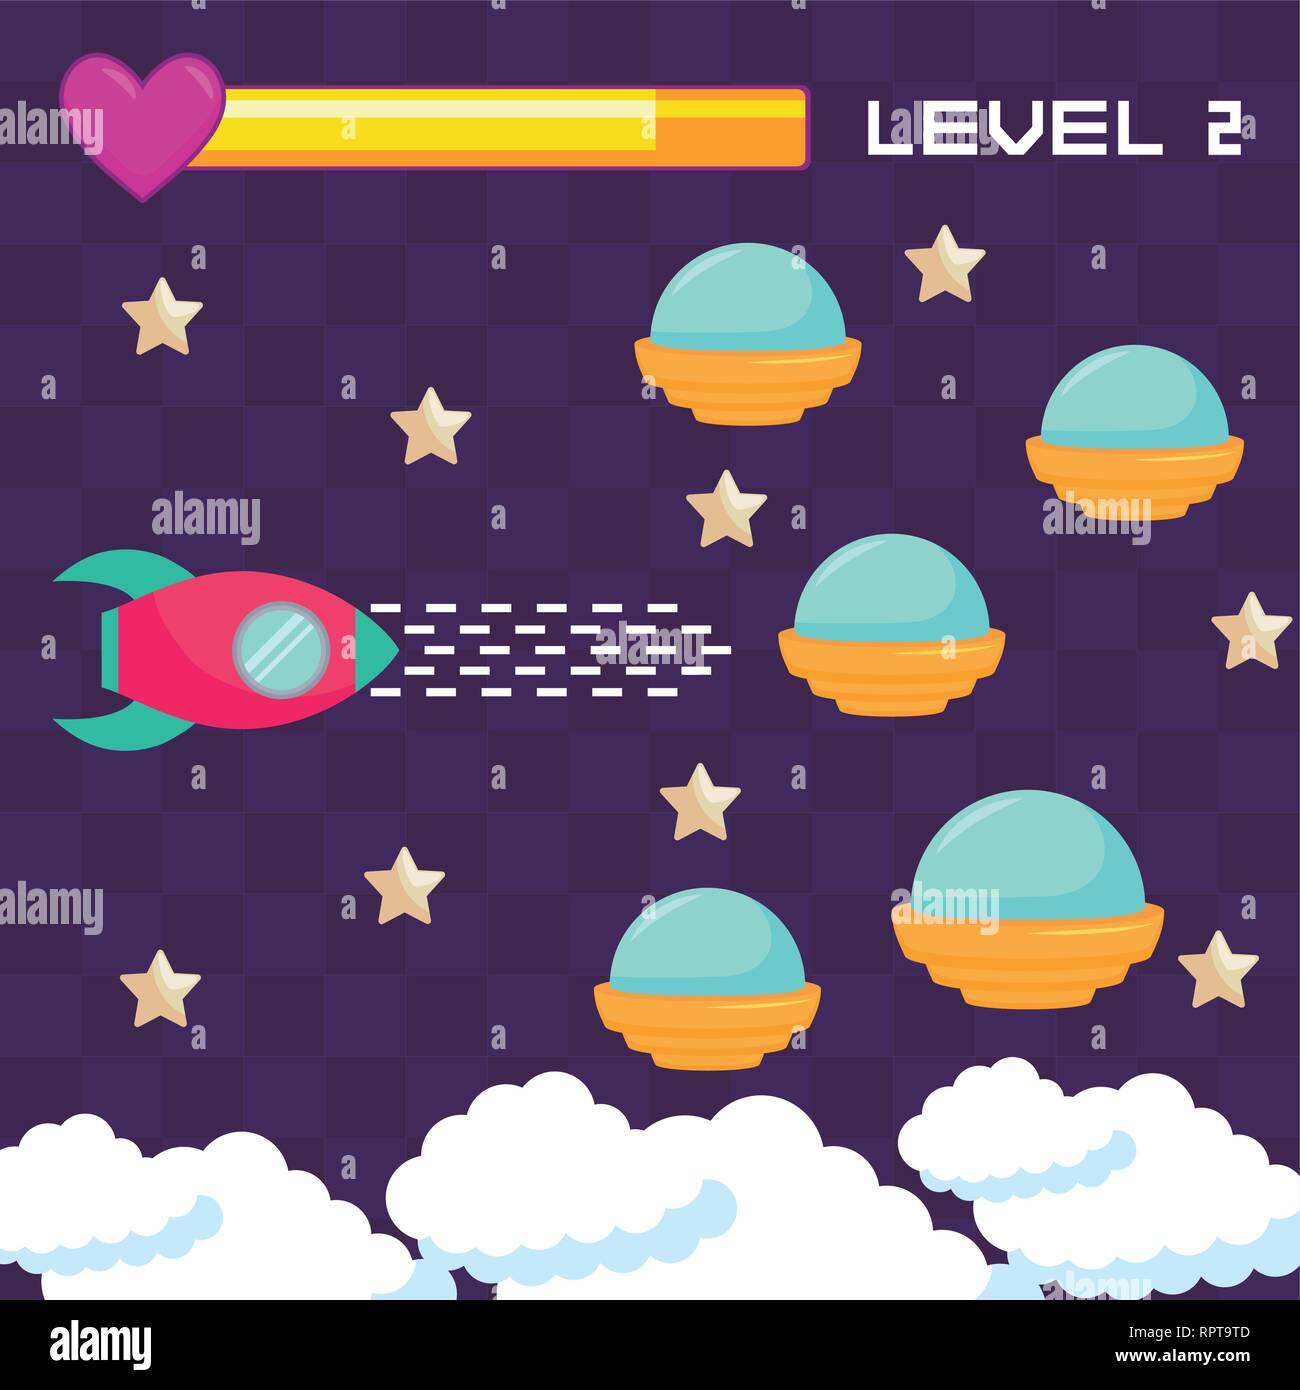 classic video game ufos flying vector illustration design - Stock Image